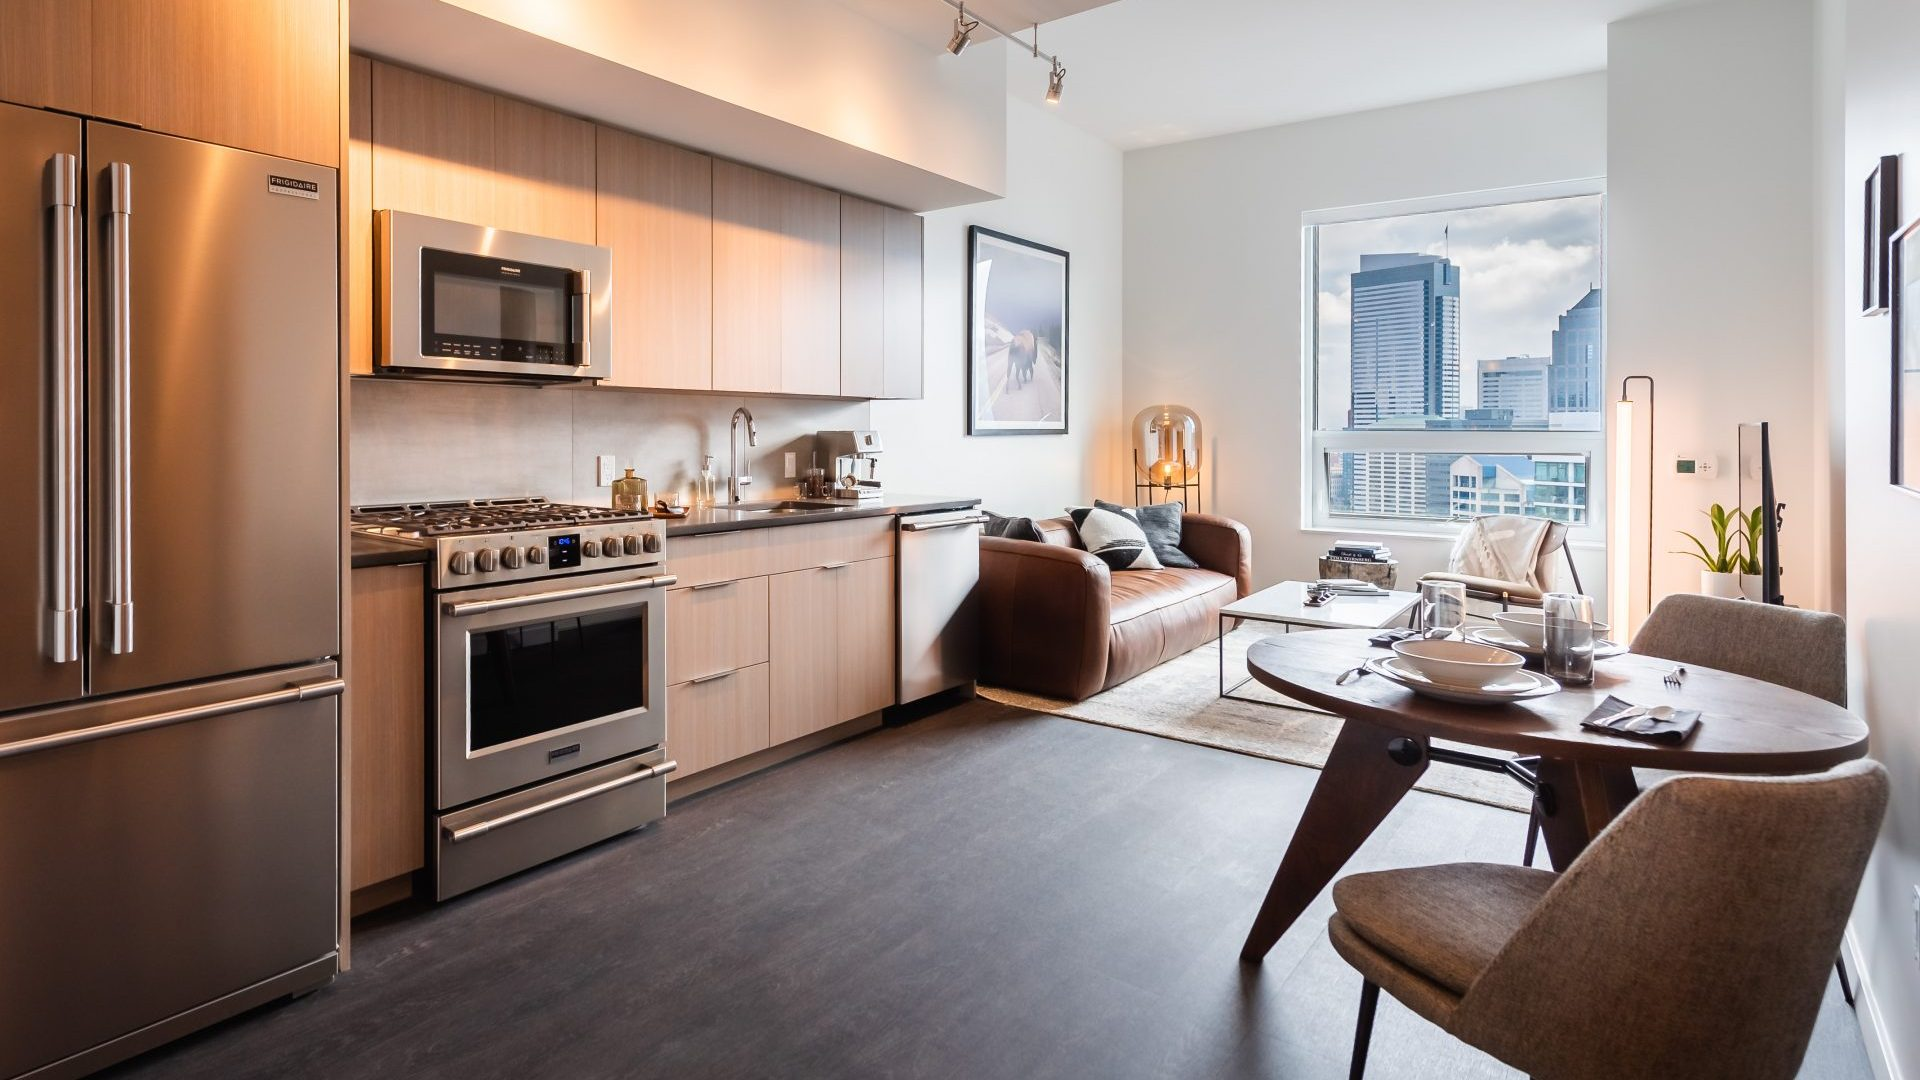 Open Concept Layouts At Arrivé Apartments in Seattle, WA